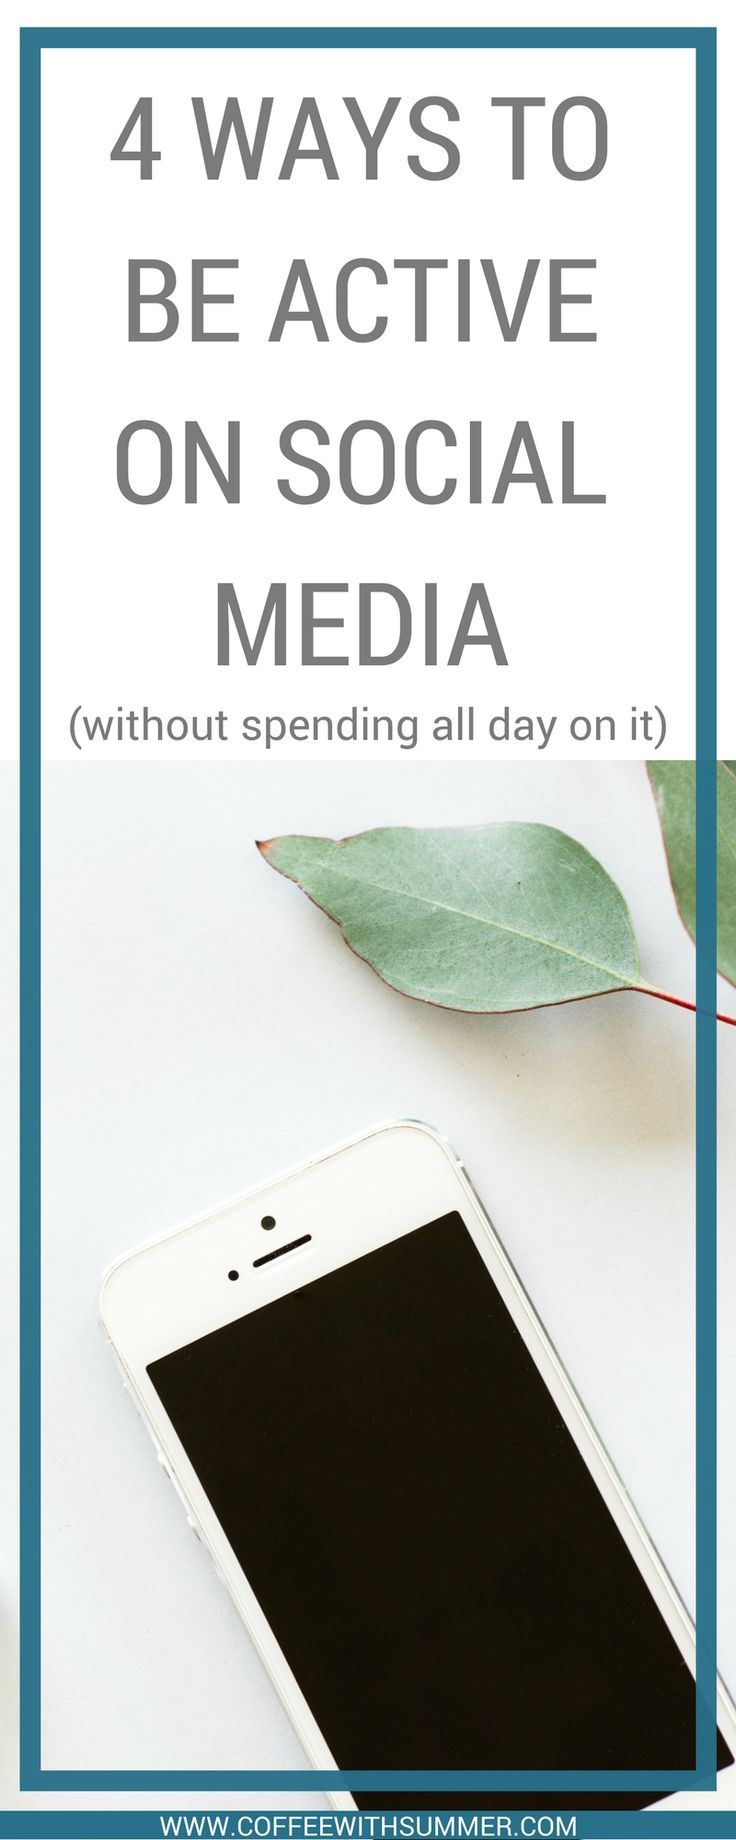 4 Ways To Be Active On Social Media (Without Spending All Day On It)